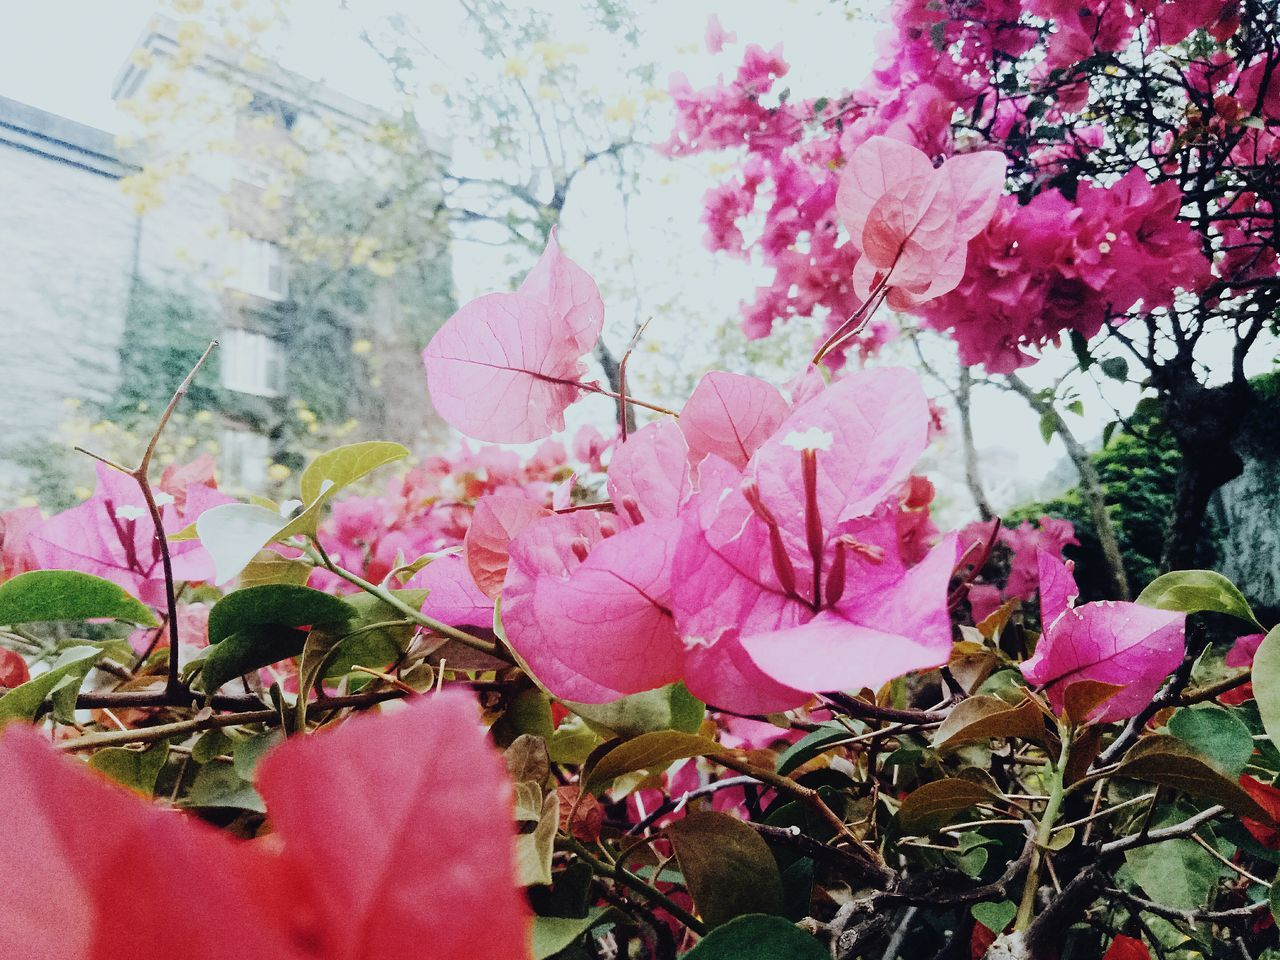 pink color, flower, growth, beauty in nature, fragility, petal, nature, flower head, plant, no people, freshness, leaf, bougainvillea, day, blooming, outdoors, springtime, close-up, tree, branch, periwinkle